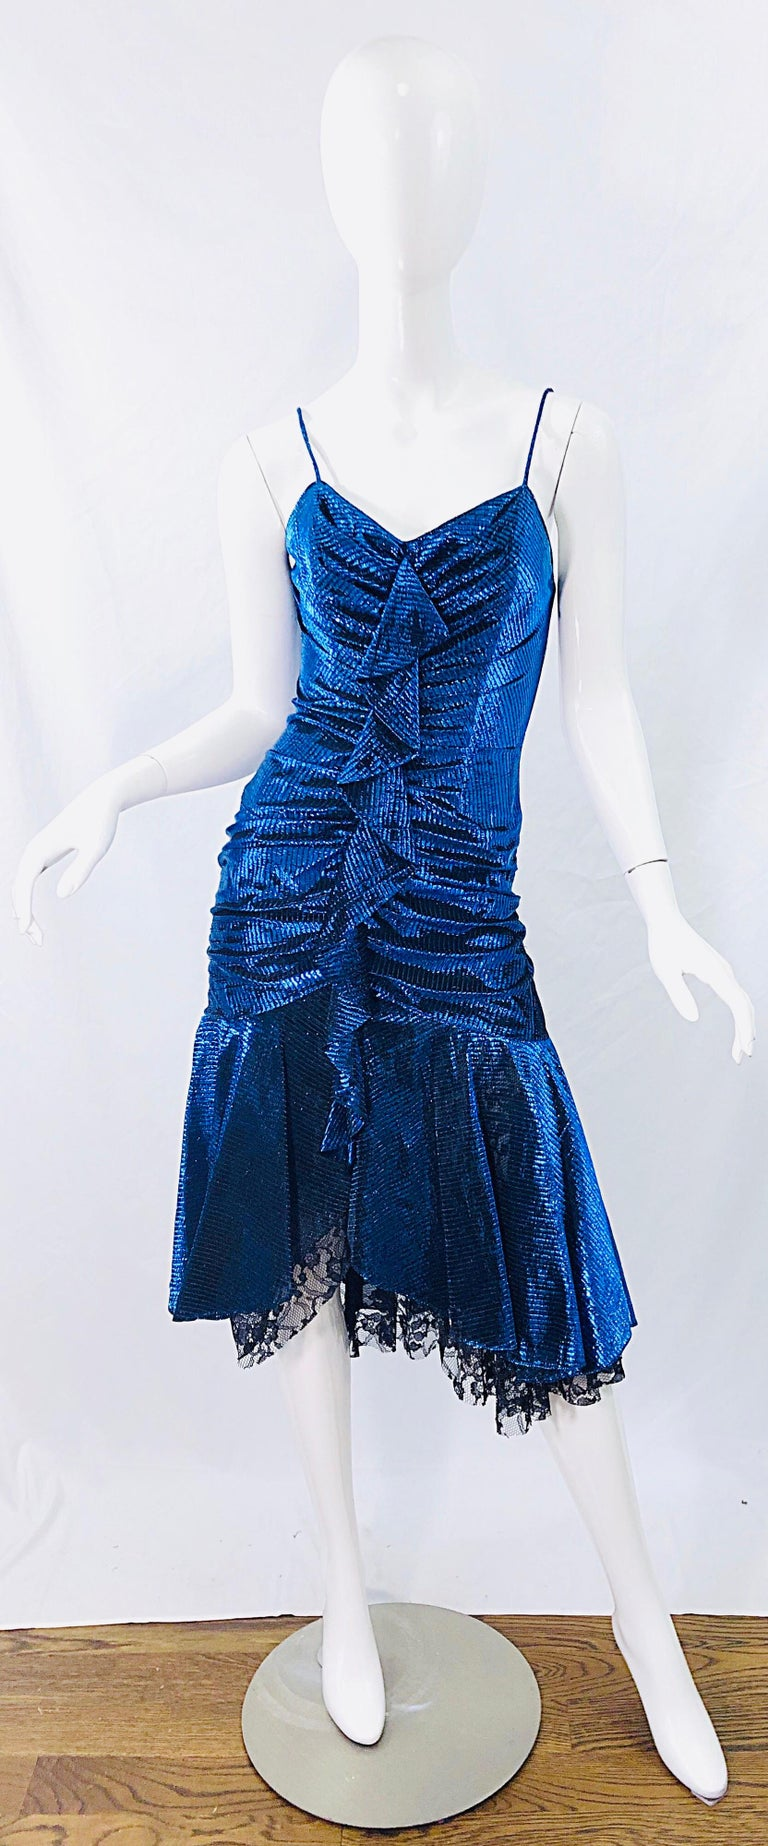 Sexy 1980s SAMIR metallic electric blue lurex and black lace handkerchief hem slinky spaghetti strap dress ! Features a flattering ruched body, with a ruffle down the center. Innner boning keeps everything in place. Hidden zipper up the back. Looks